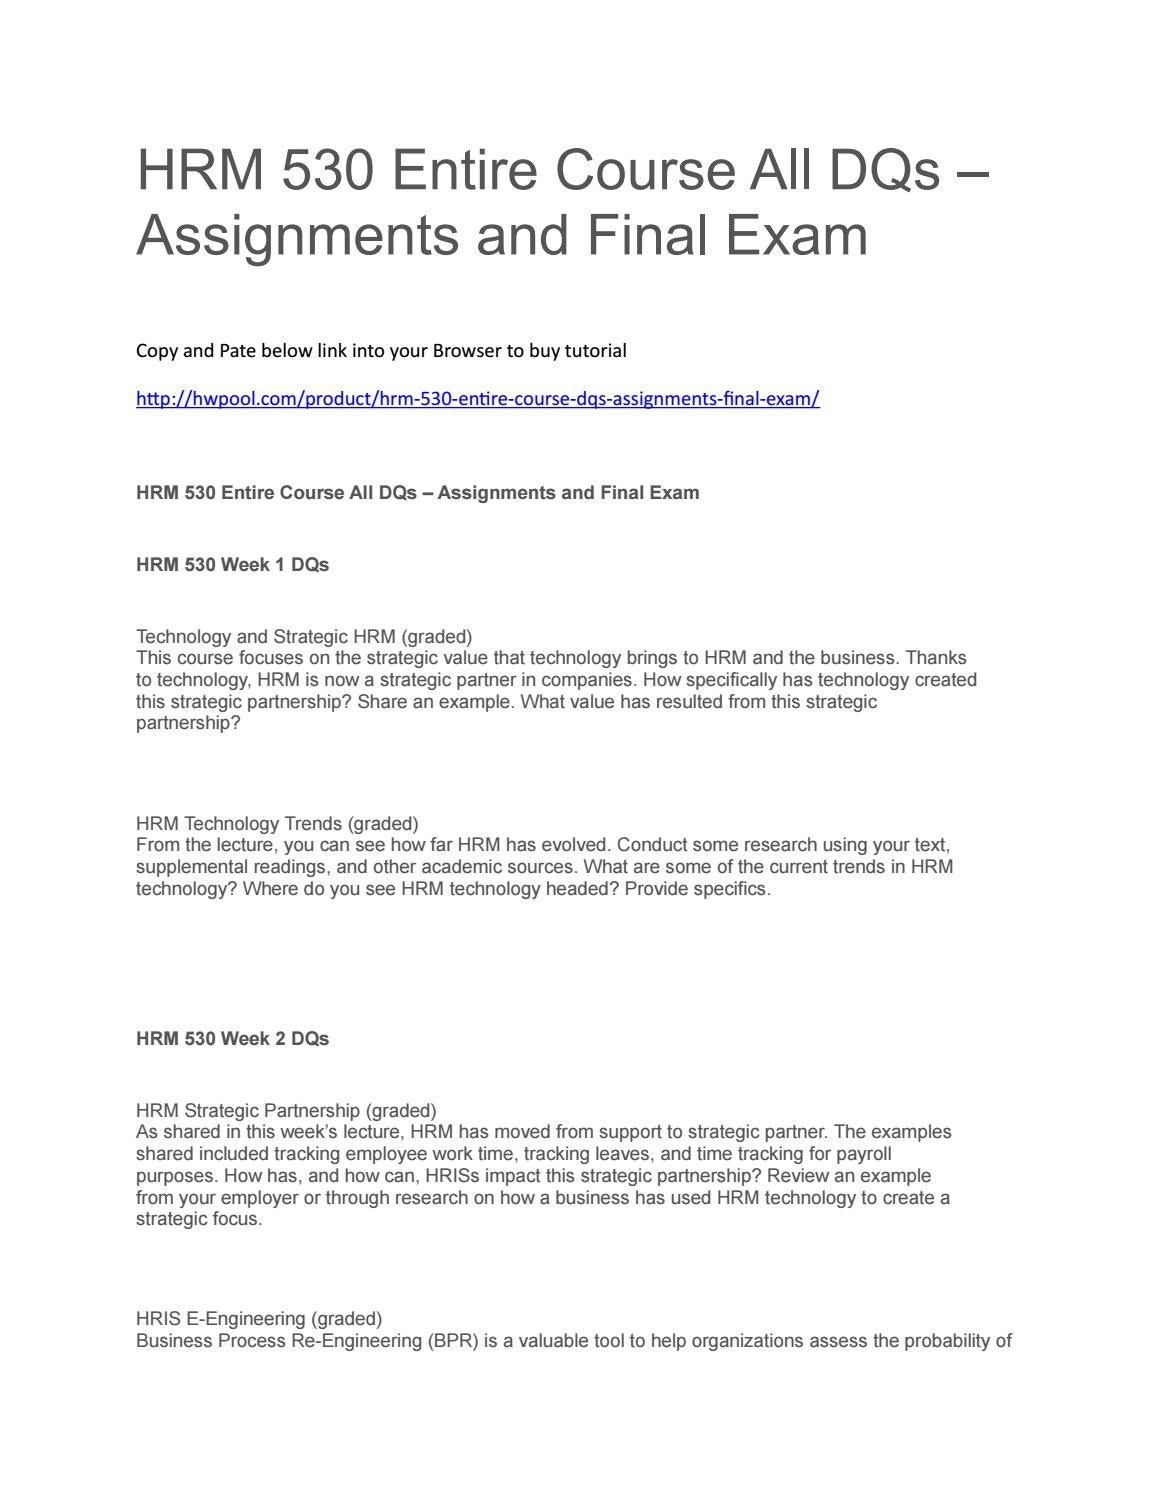 hrm 530 entire course all dqs assignments and final exam by johnjone issuu